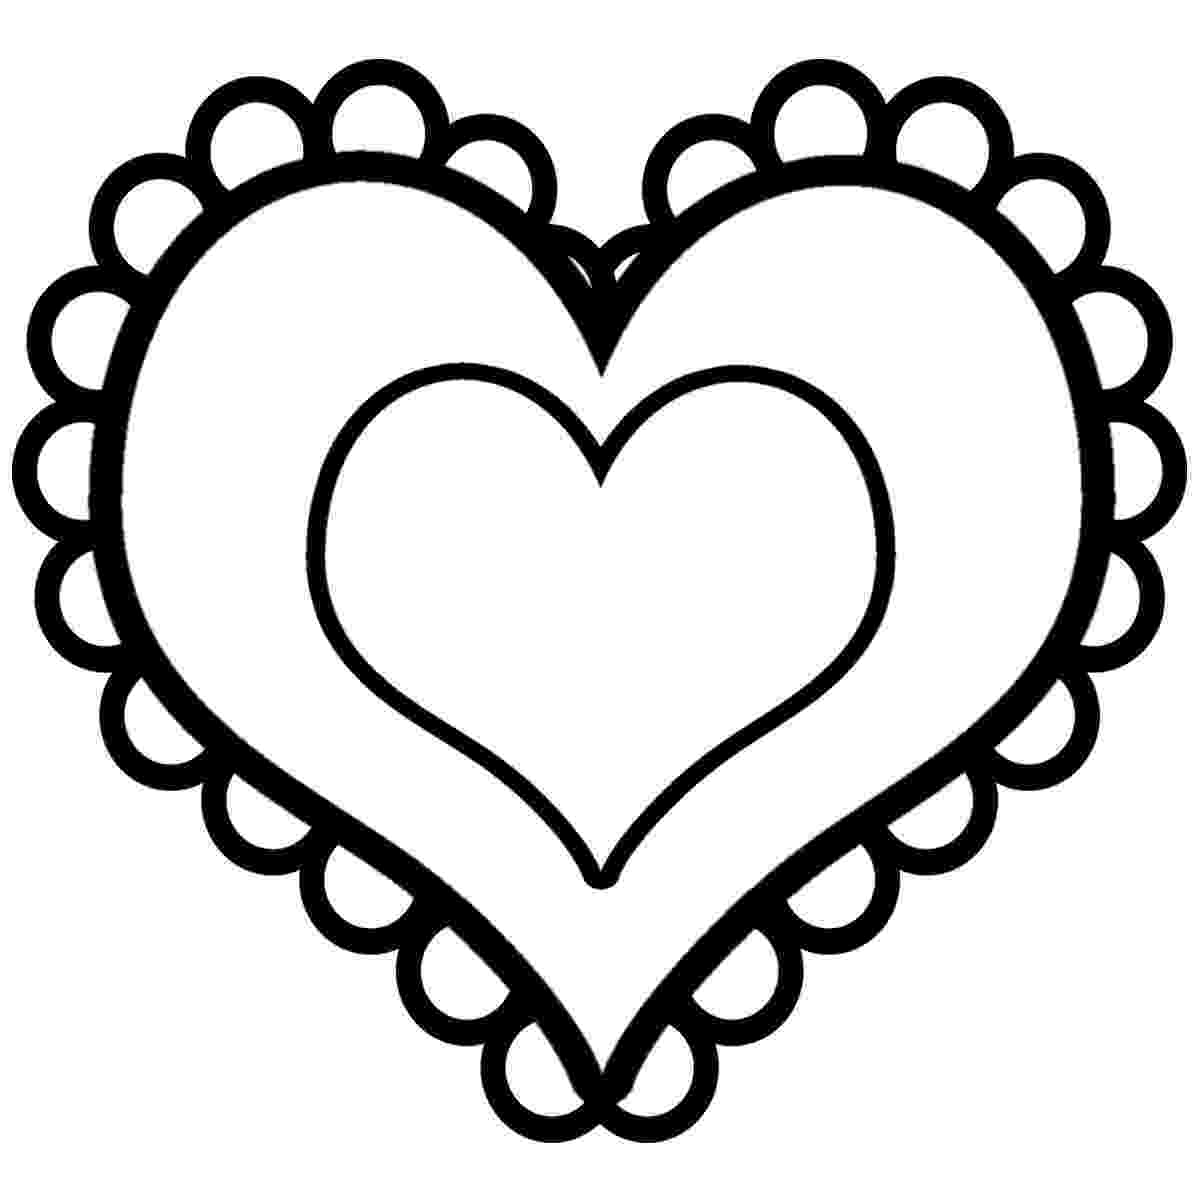 colouring love hearts free printable heart coloring pages for kids colouring hearts love